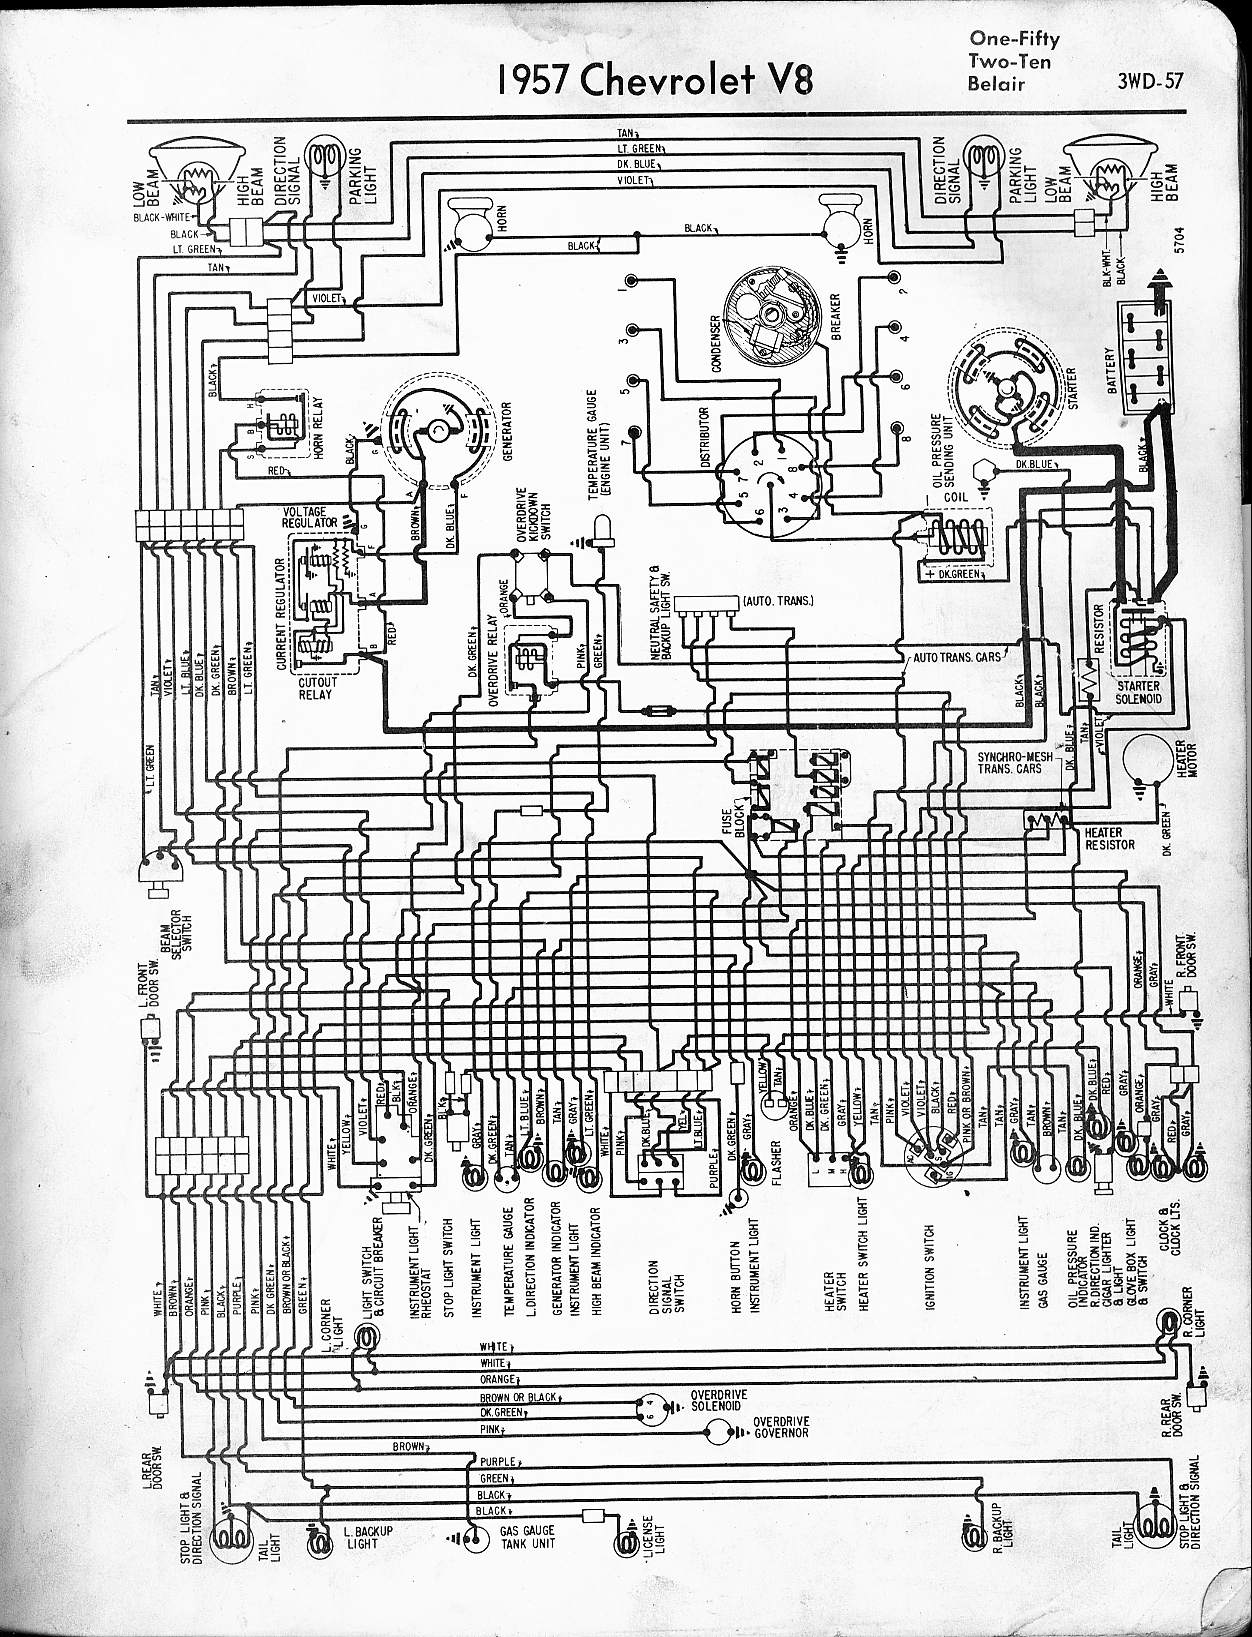 MWireChev57_3WD 057 c5 stereo wiring diagram? corvetteforum chevrolet corvette Chevy Truck Wiring Diagram at bayanpartner.co